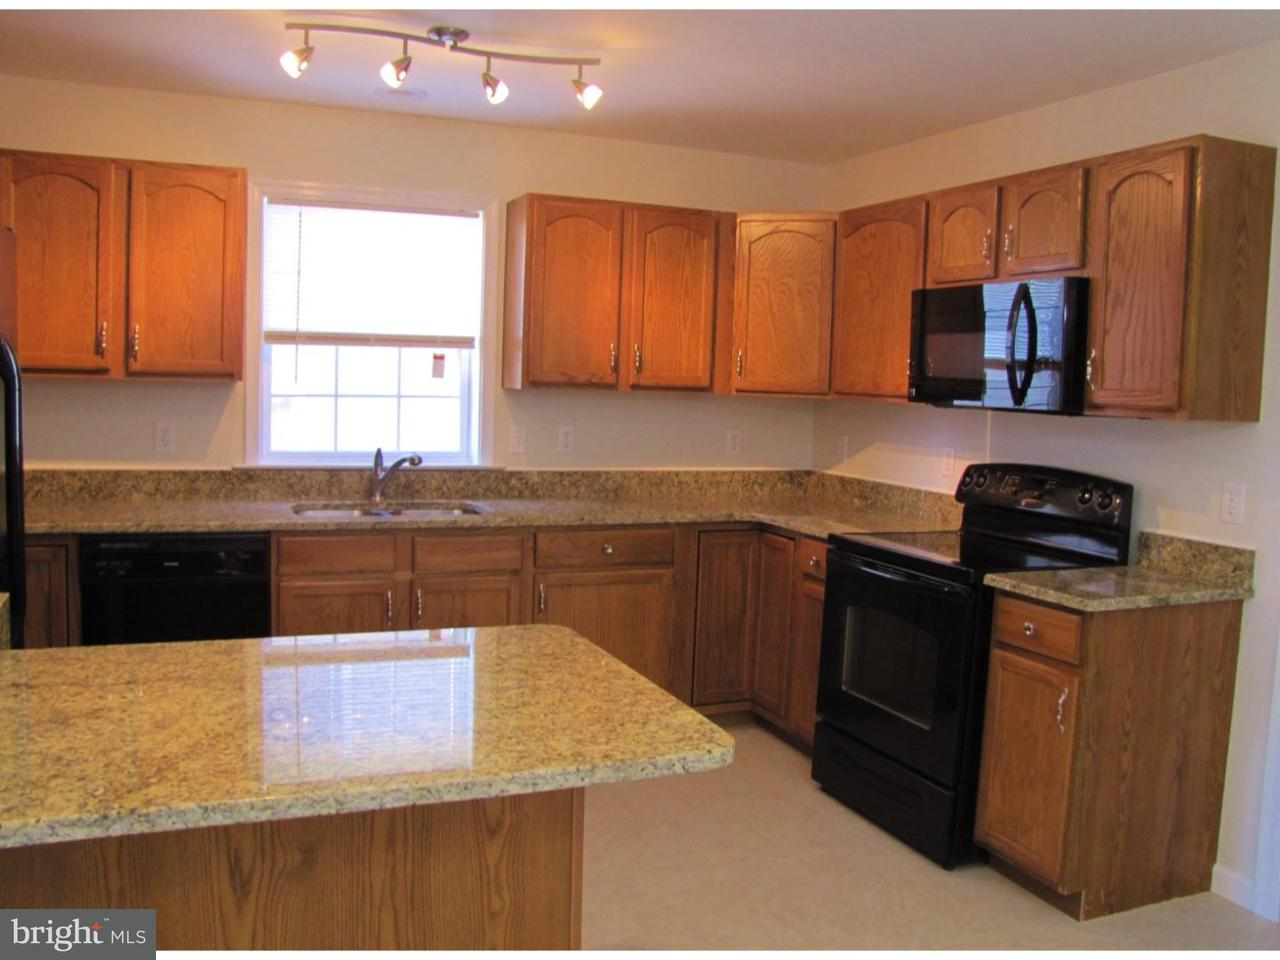 Townhouse for Rent at 427 W MULBERRY Street Kennett Square, Pennsylvania 19348 United States